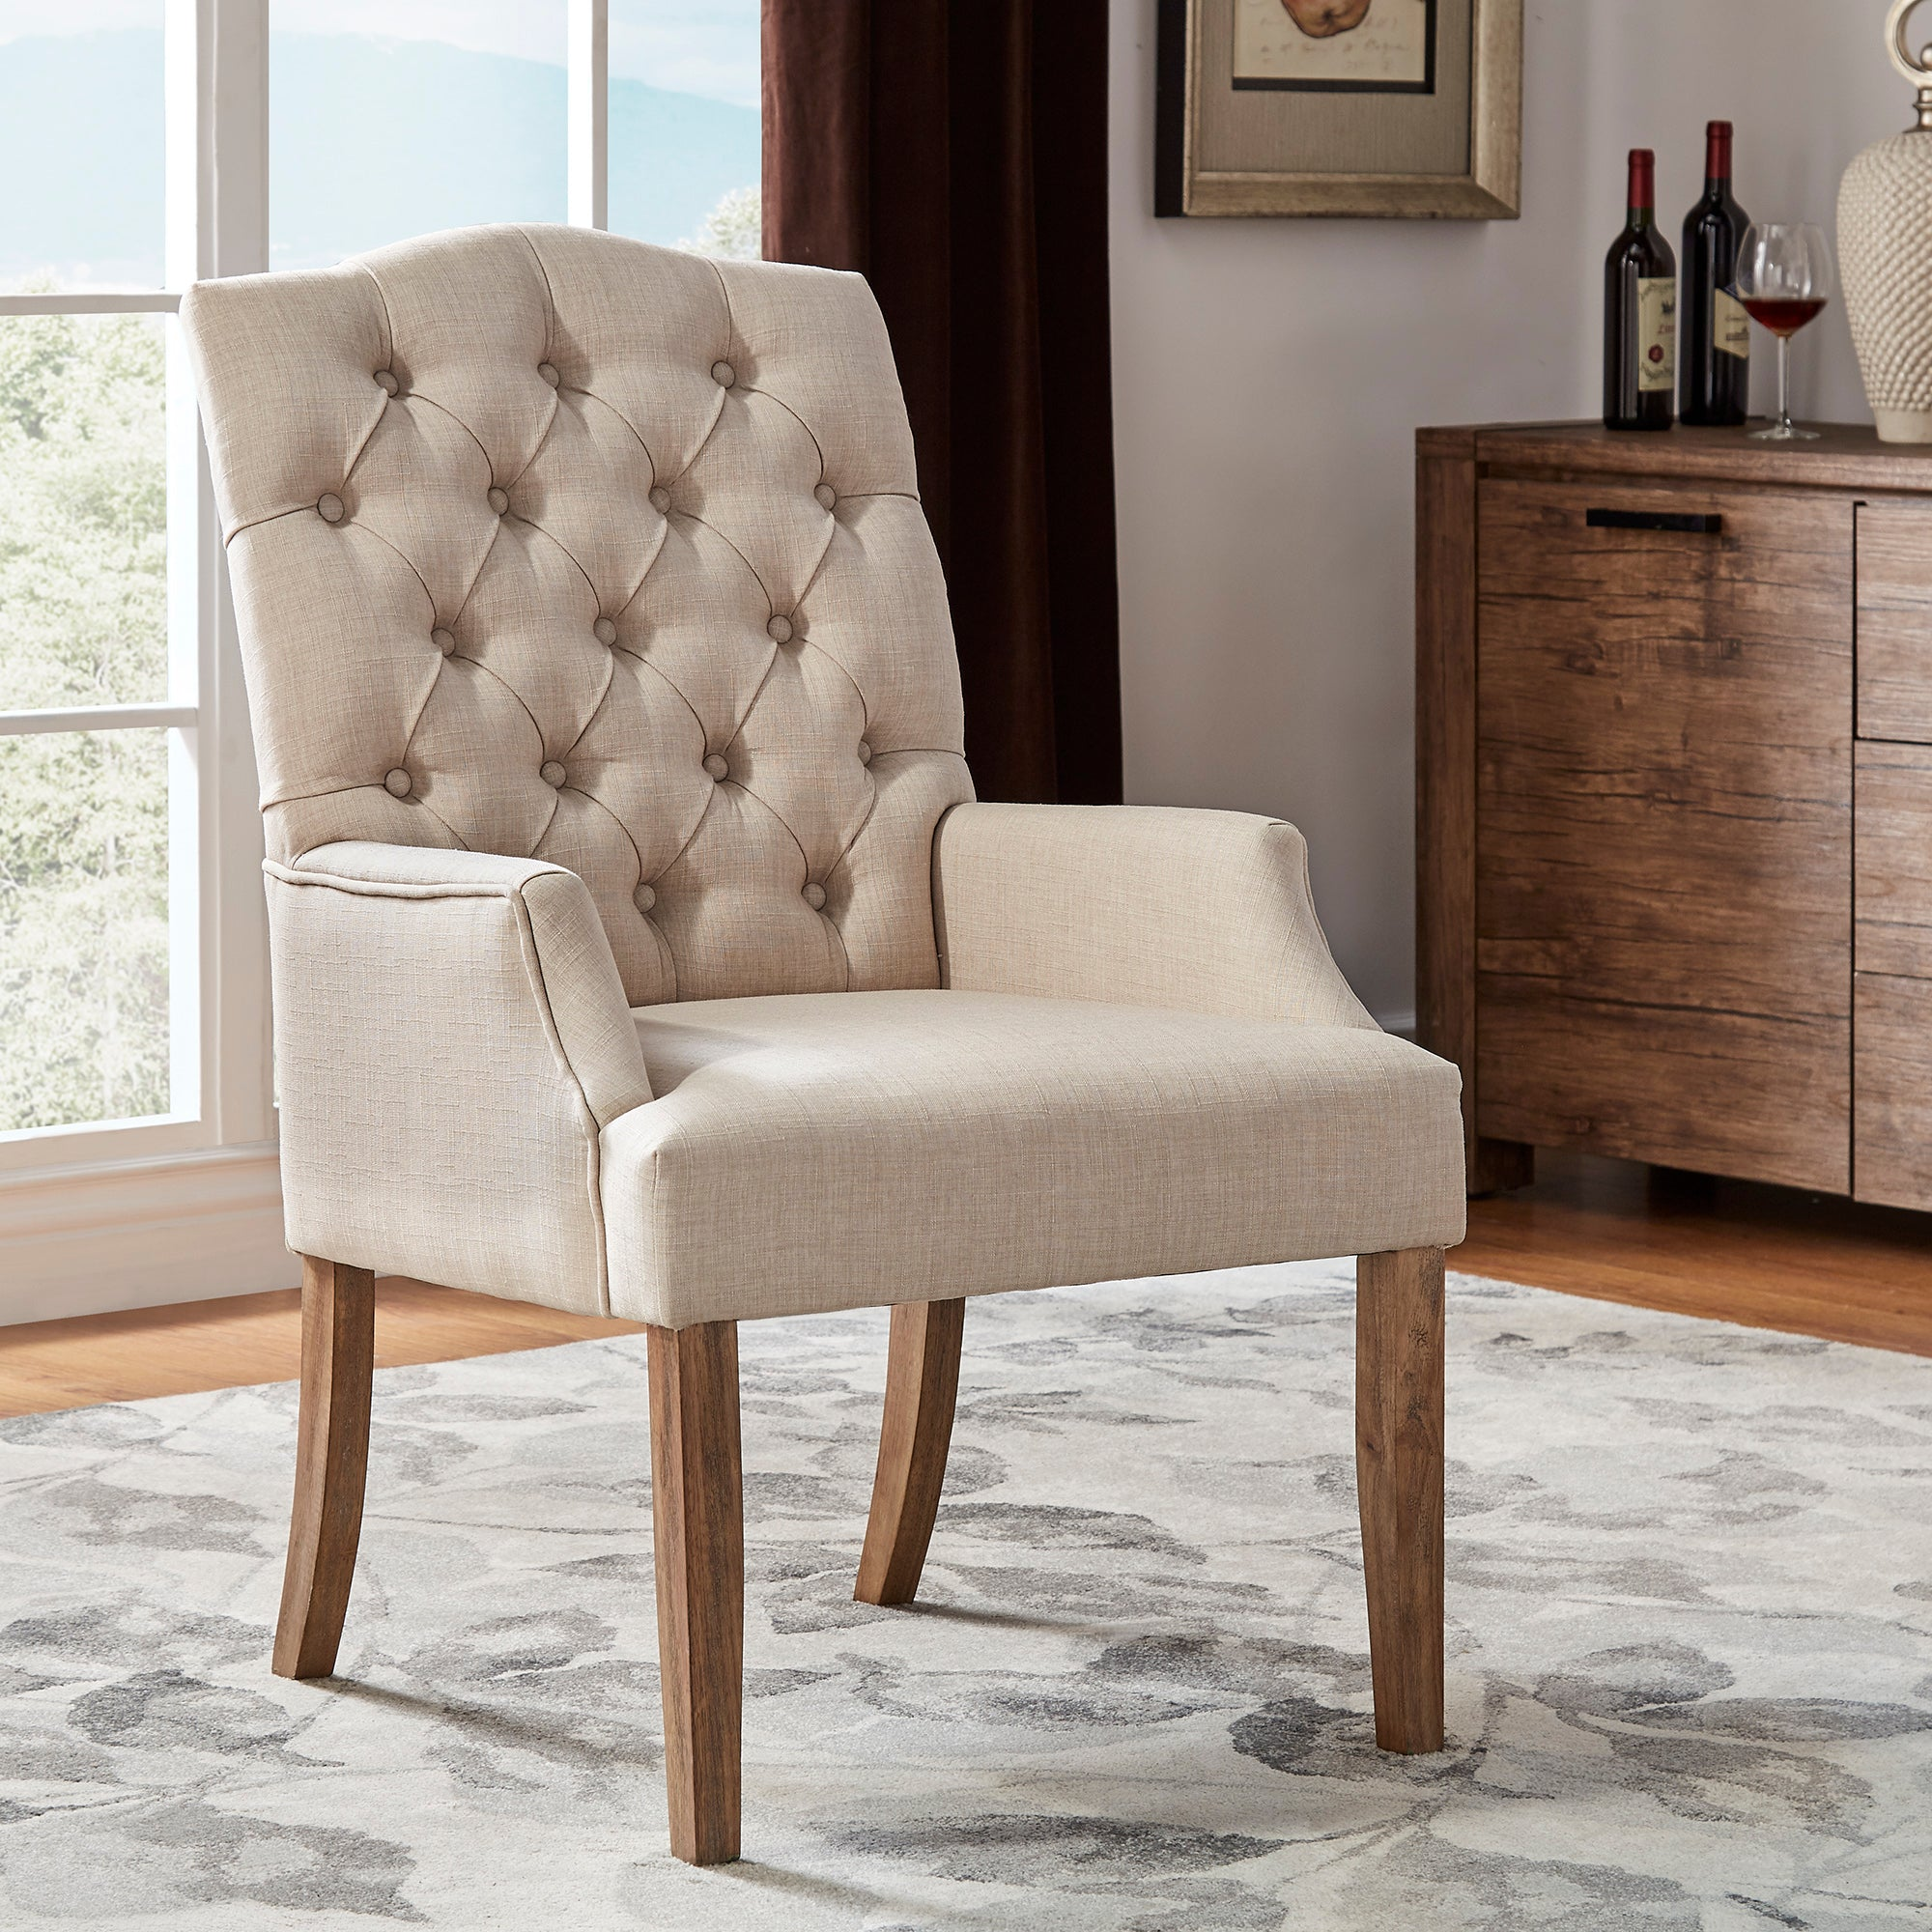 Light Distressed Natural Finish Linen Tufted Dining Chair